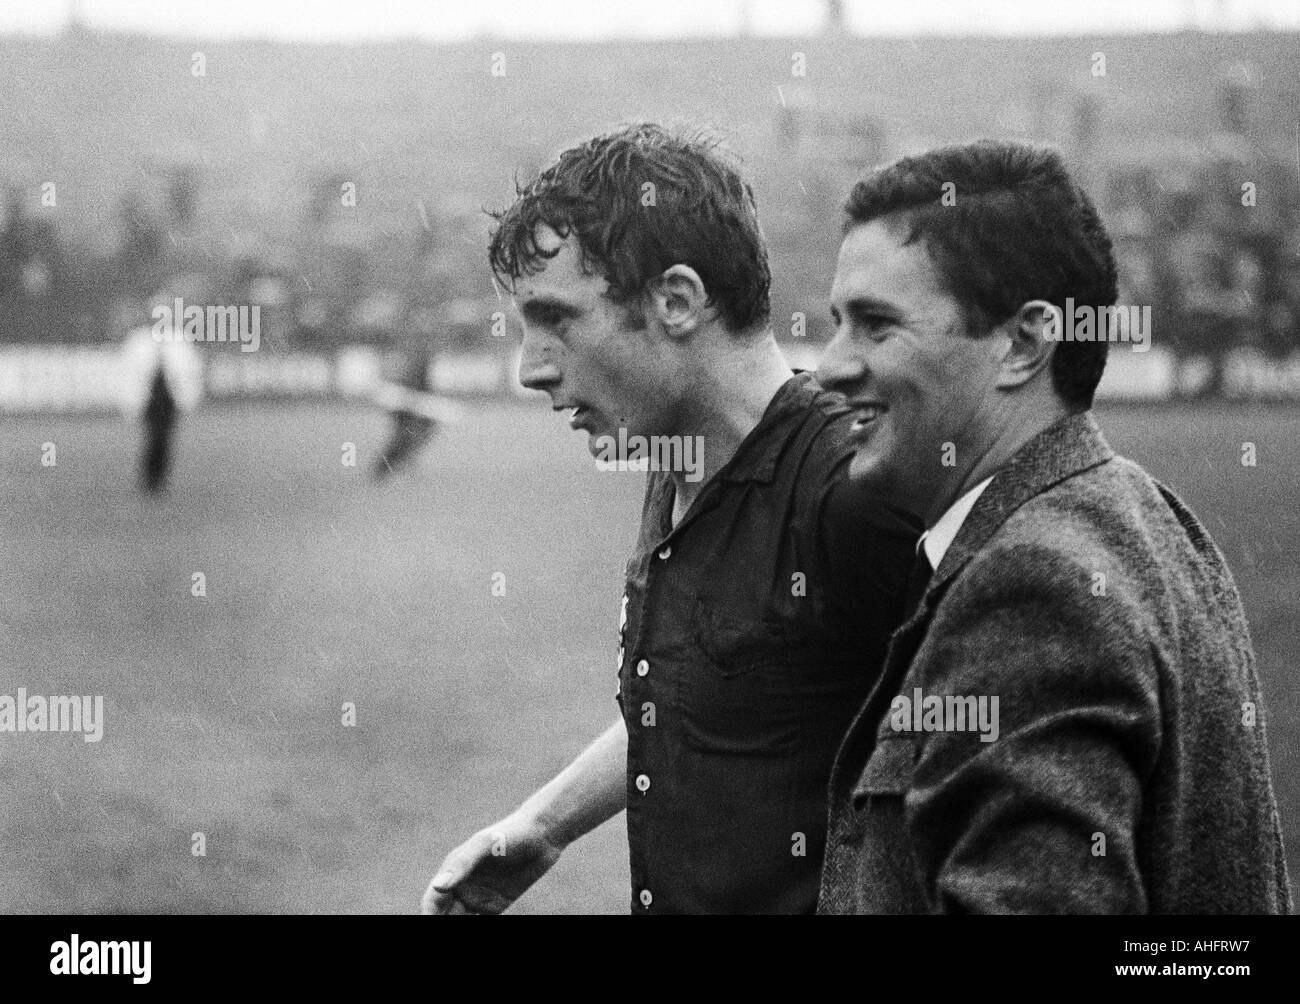 football, Regionalliga West, 1967/1968, Stadium am Uhlenkrug in Essen, ETB Schwarz-Weiss Essen versus Bayer Leverkusen 3:3, football players, left Guenter Haarmann (Leverkusen), right Fredi Henneken (Leverkusen) in civvies - Stock Image